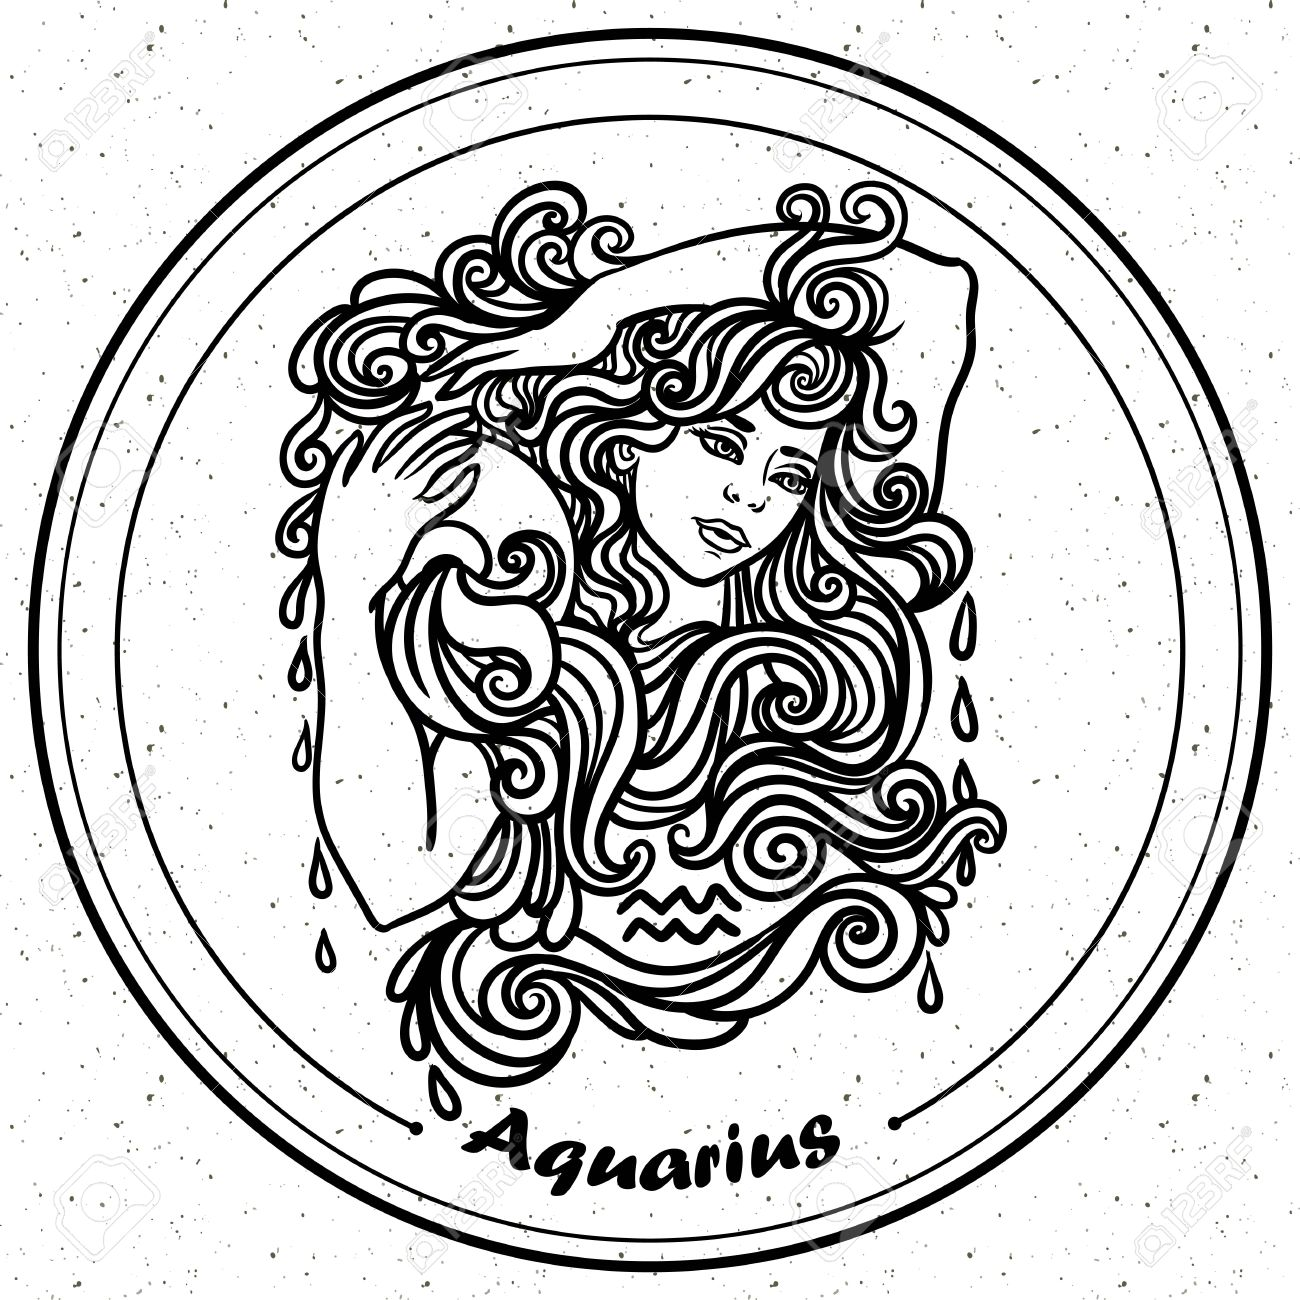 detailed aquarius in aztec filigree line art paisley style tattoo